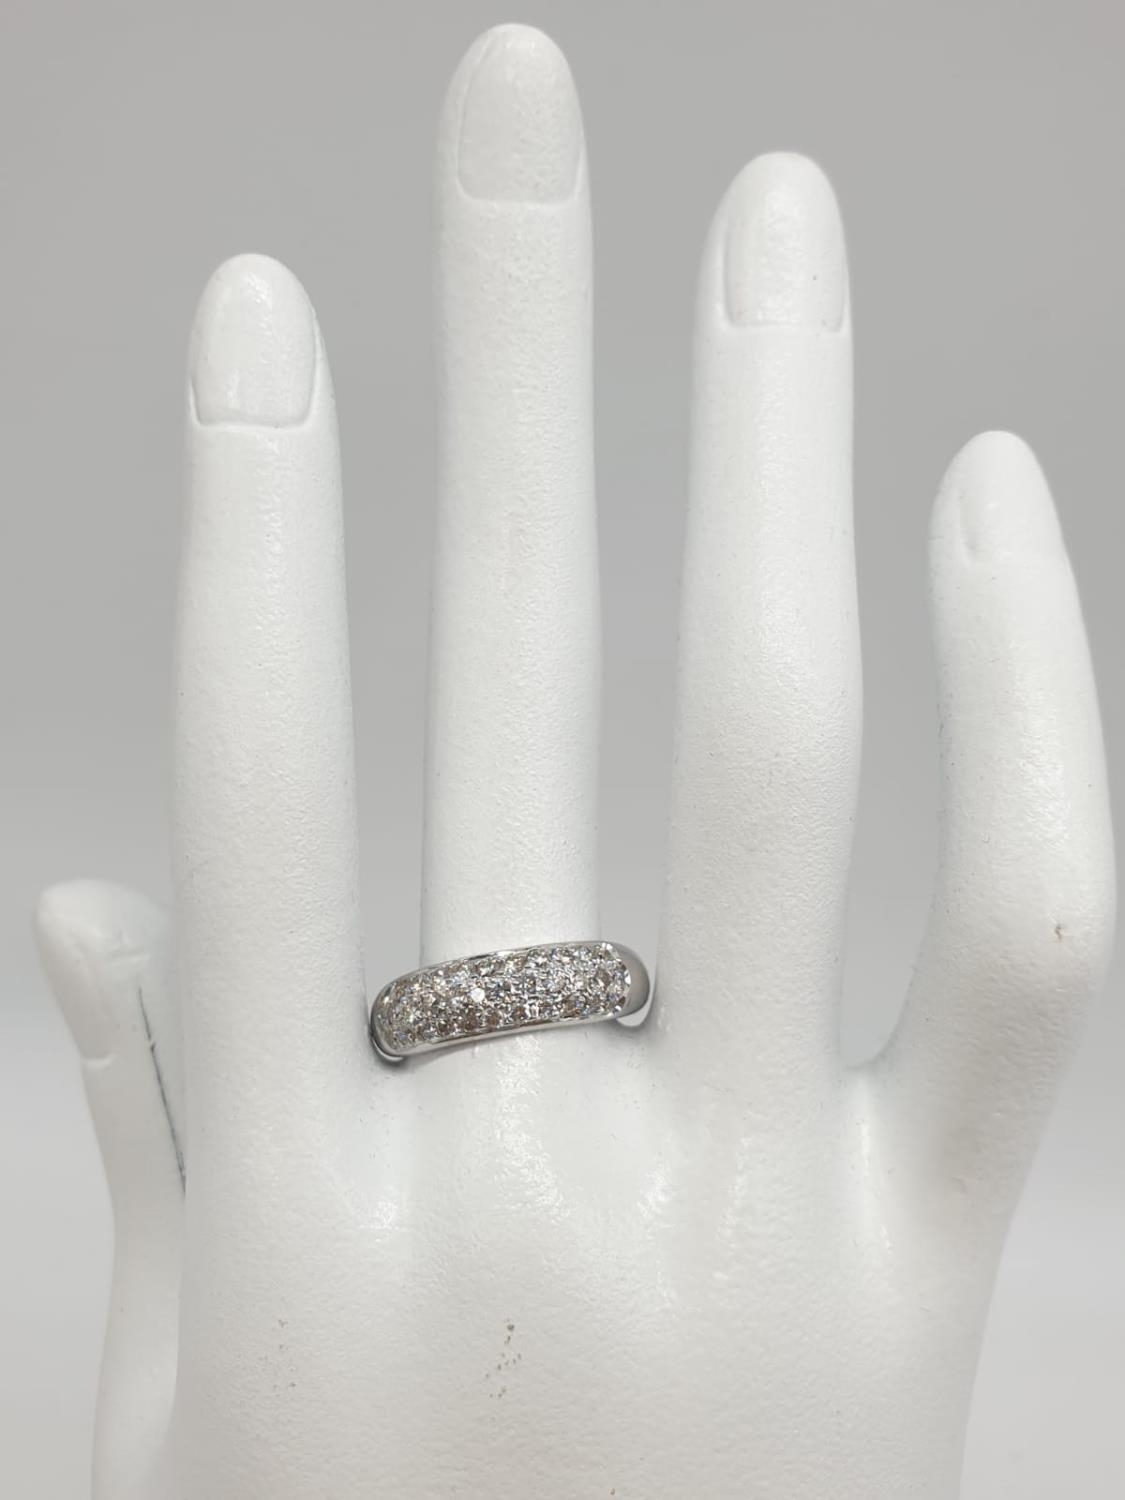 A diamond encrusted 18ct white gold ring. 6.4g and size N. - Image 6 of 7